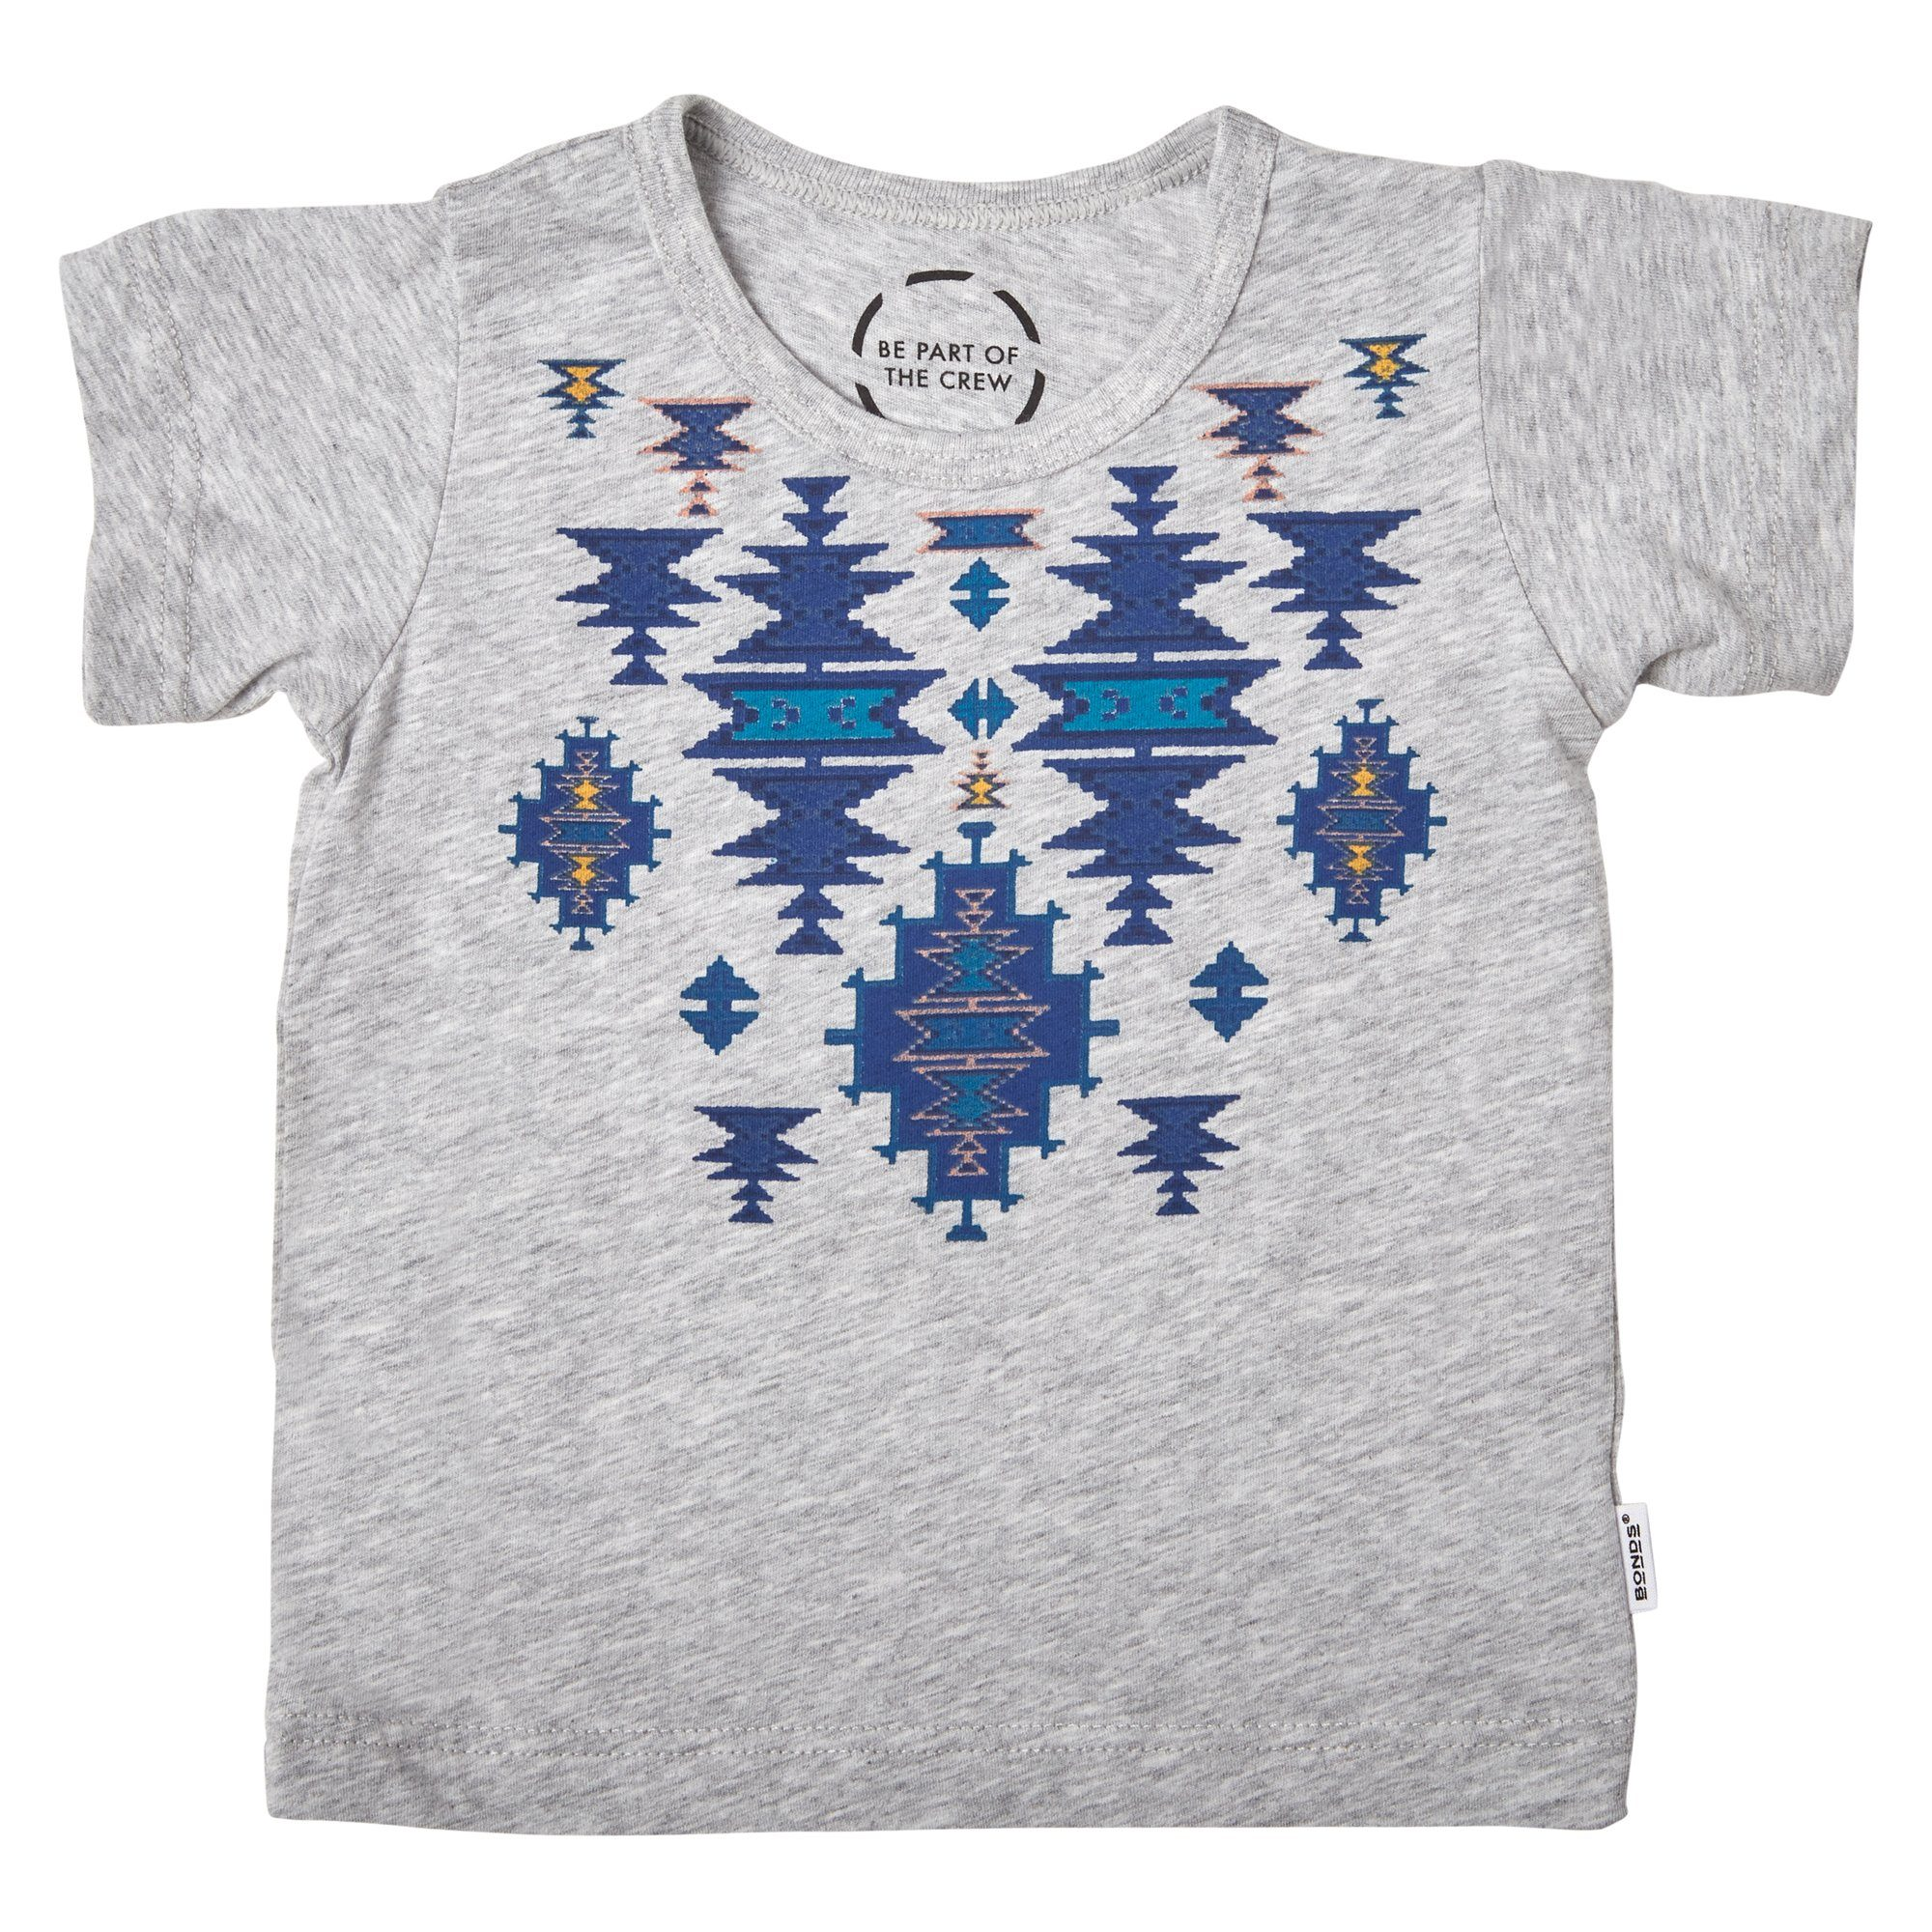 Bonds Baby The Crew Tee Aztec Print Grey Baby Isbister & Co Wholesale